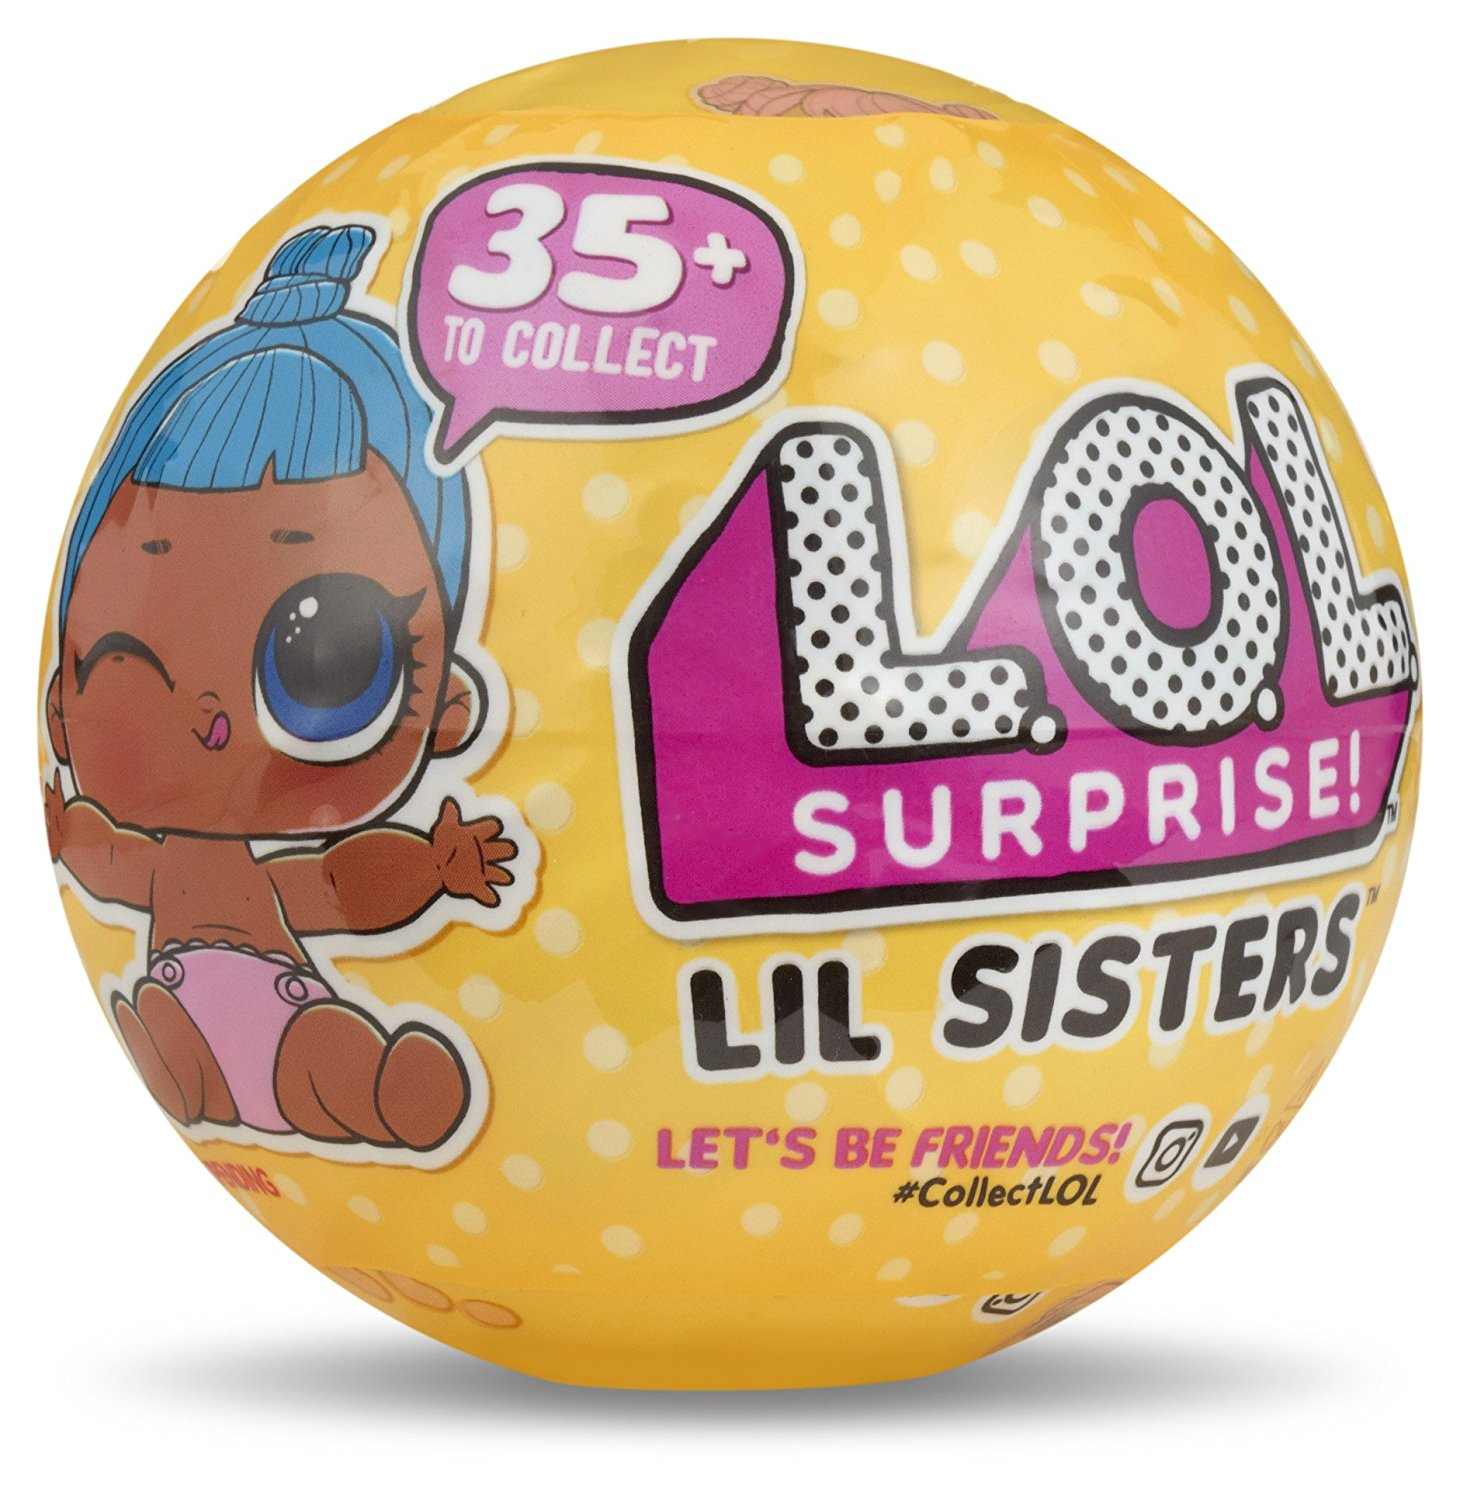 l.o.l. surprise collectible doll inside a ball | holiday toys